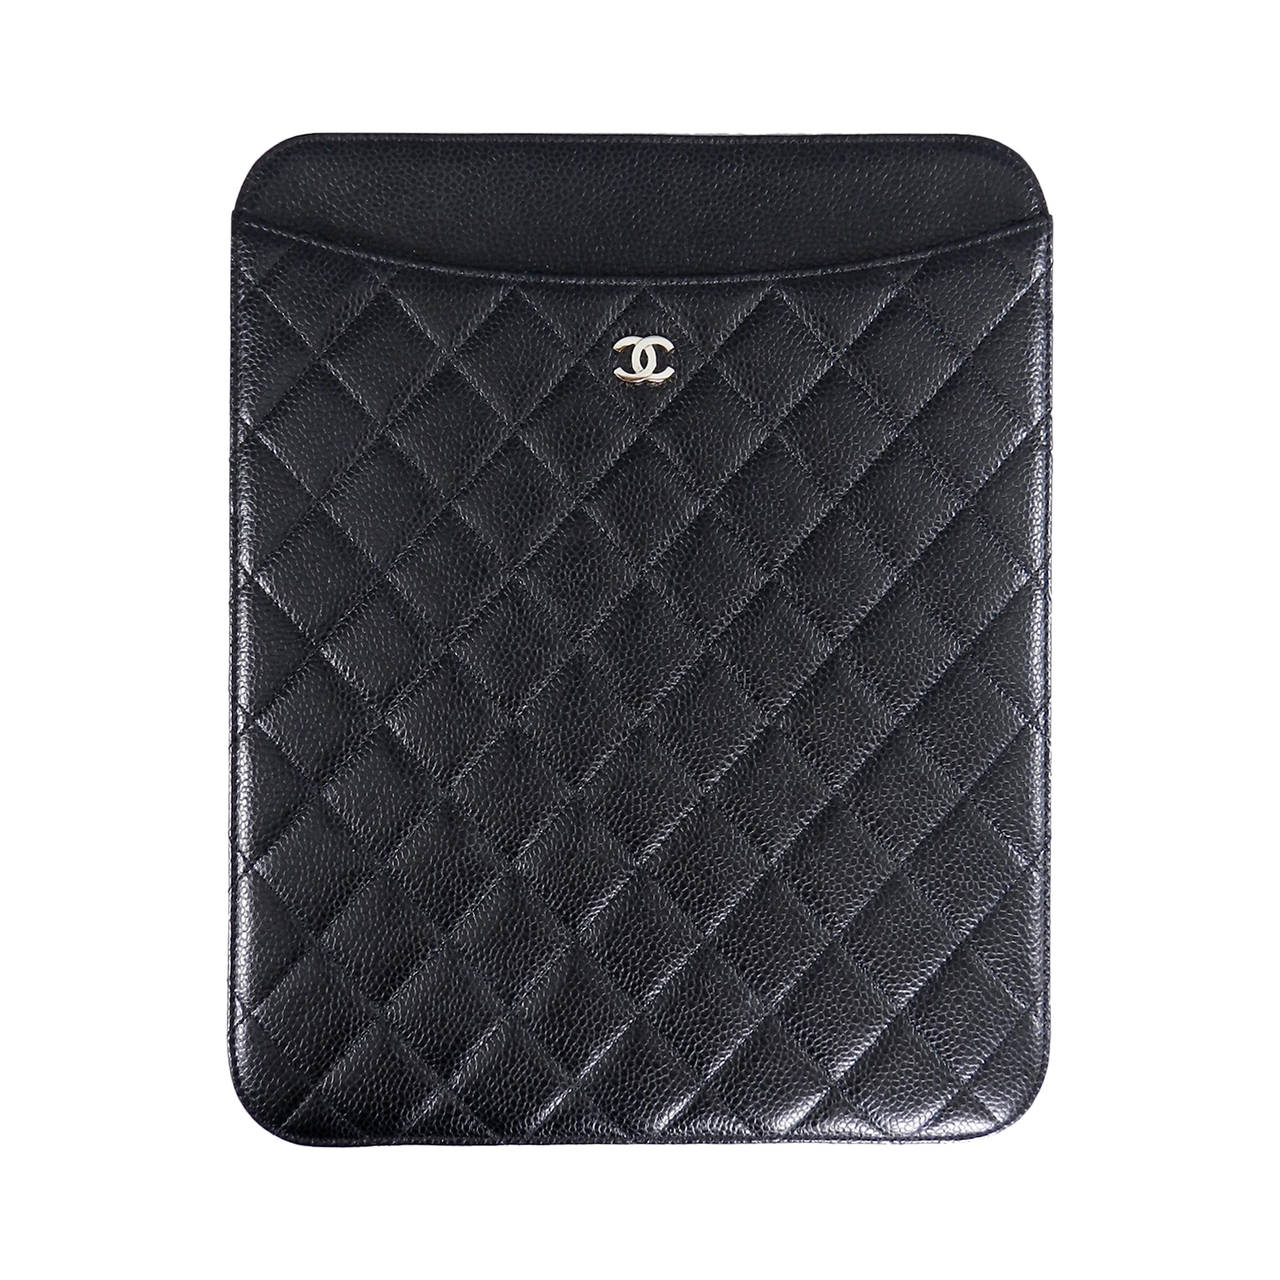 Chanel Black Caviar Ipad Case - Silvertone Hardware For Sale